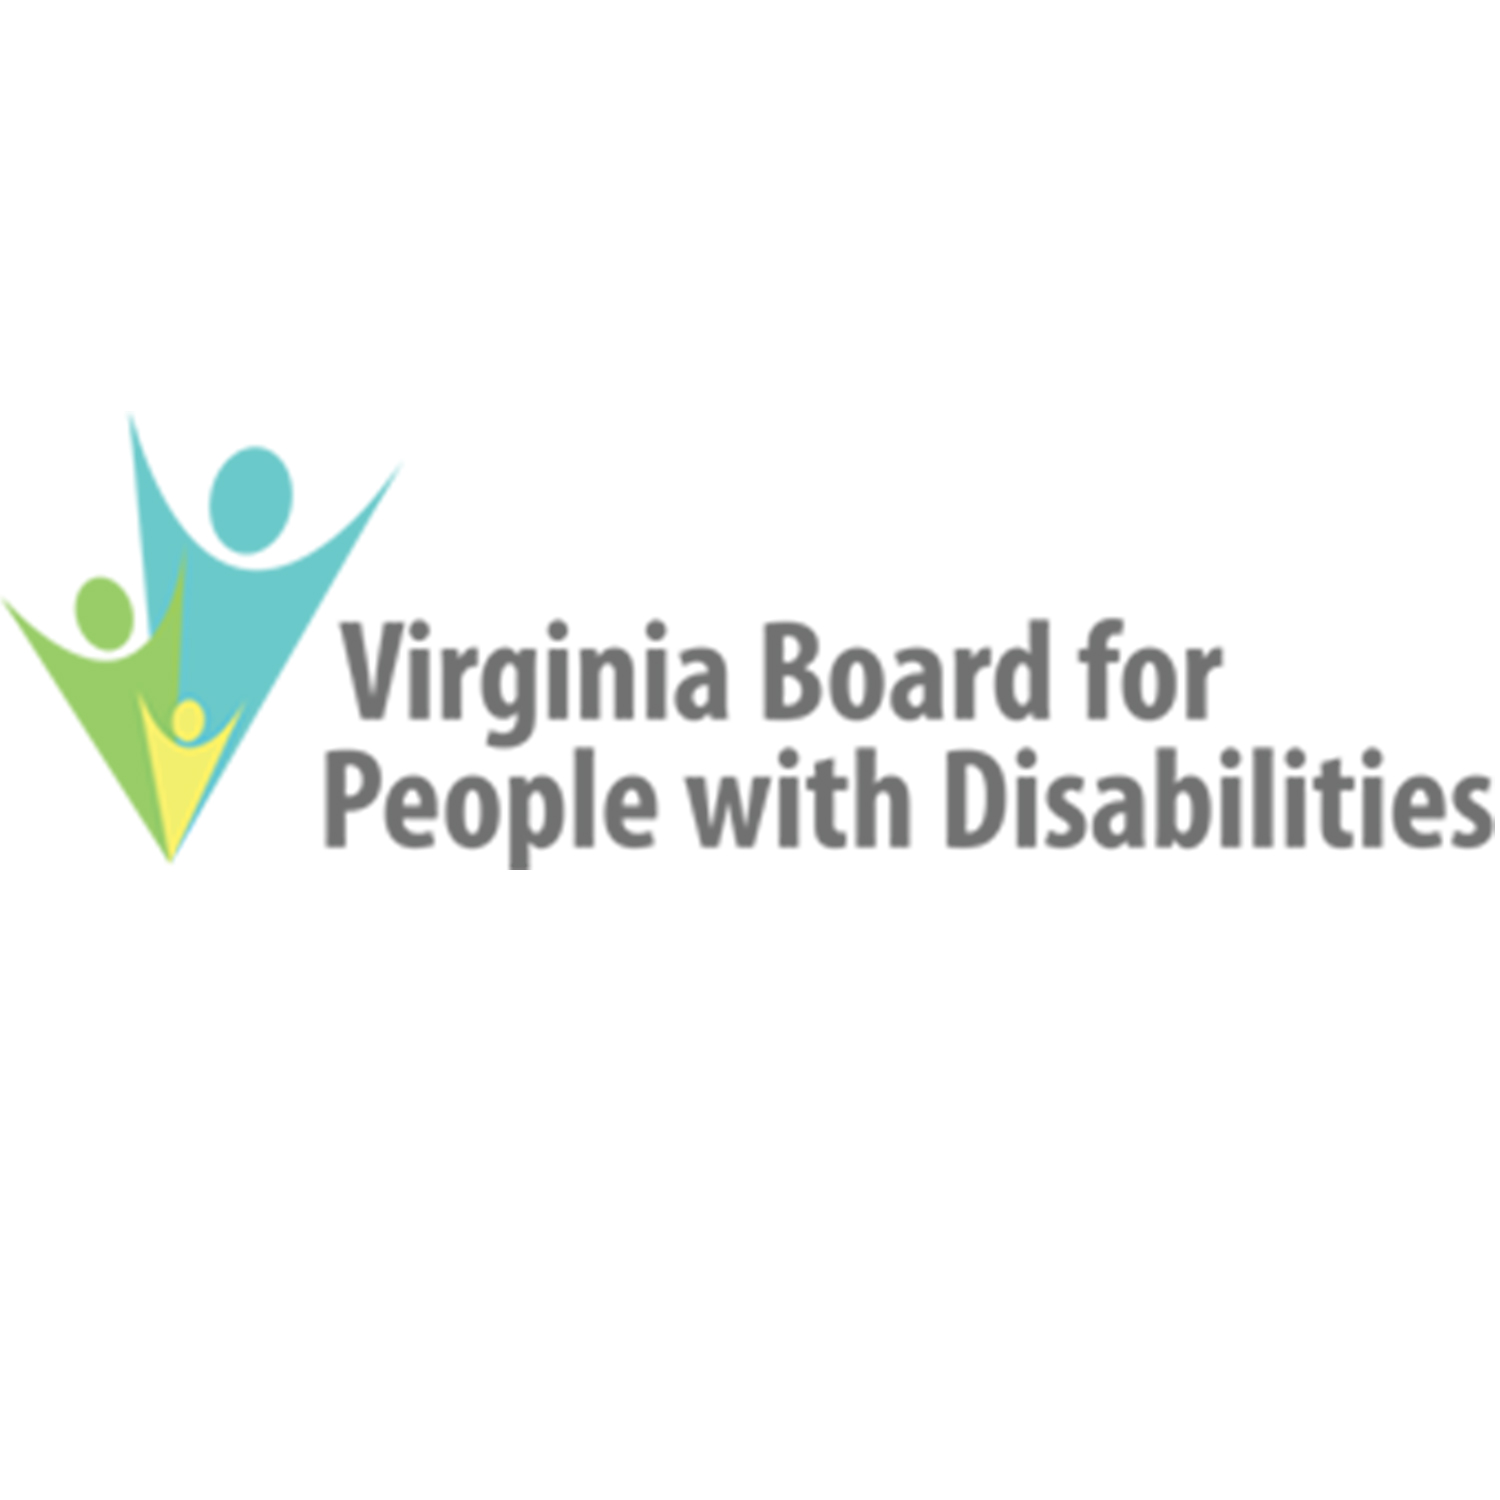 VBPD emergency backup generator grants board for people with disabilities virginia